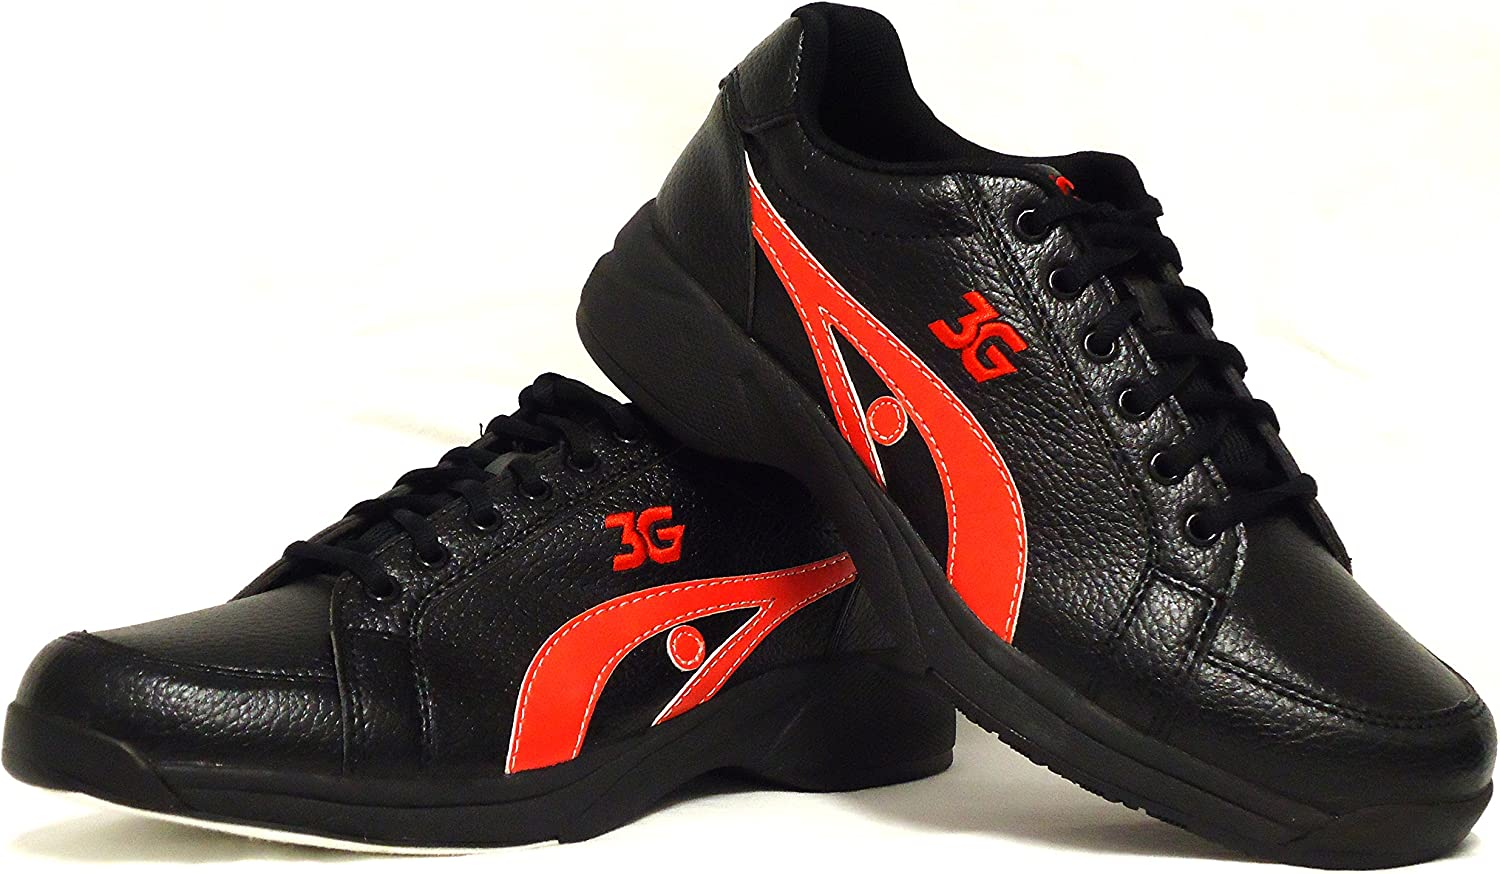 900 Global Sneaks Unisex Bowling shoes